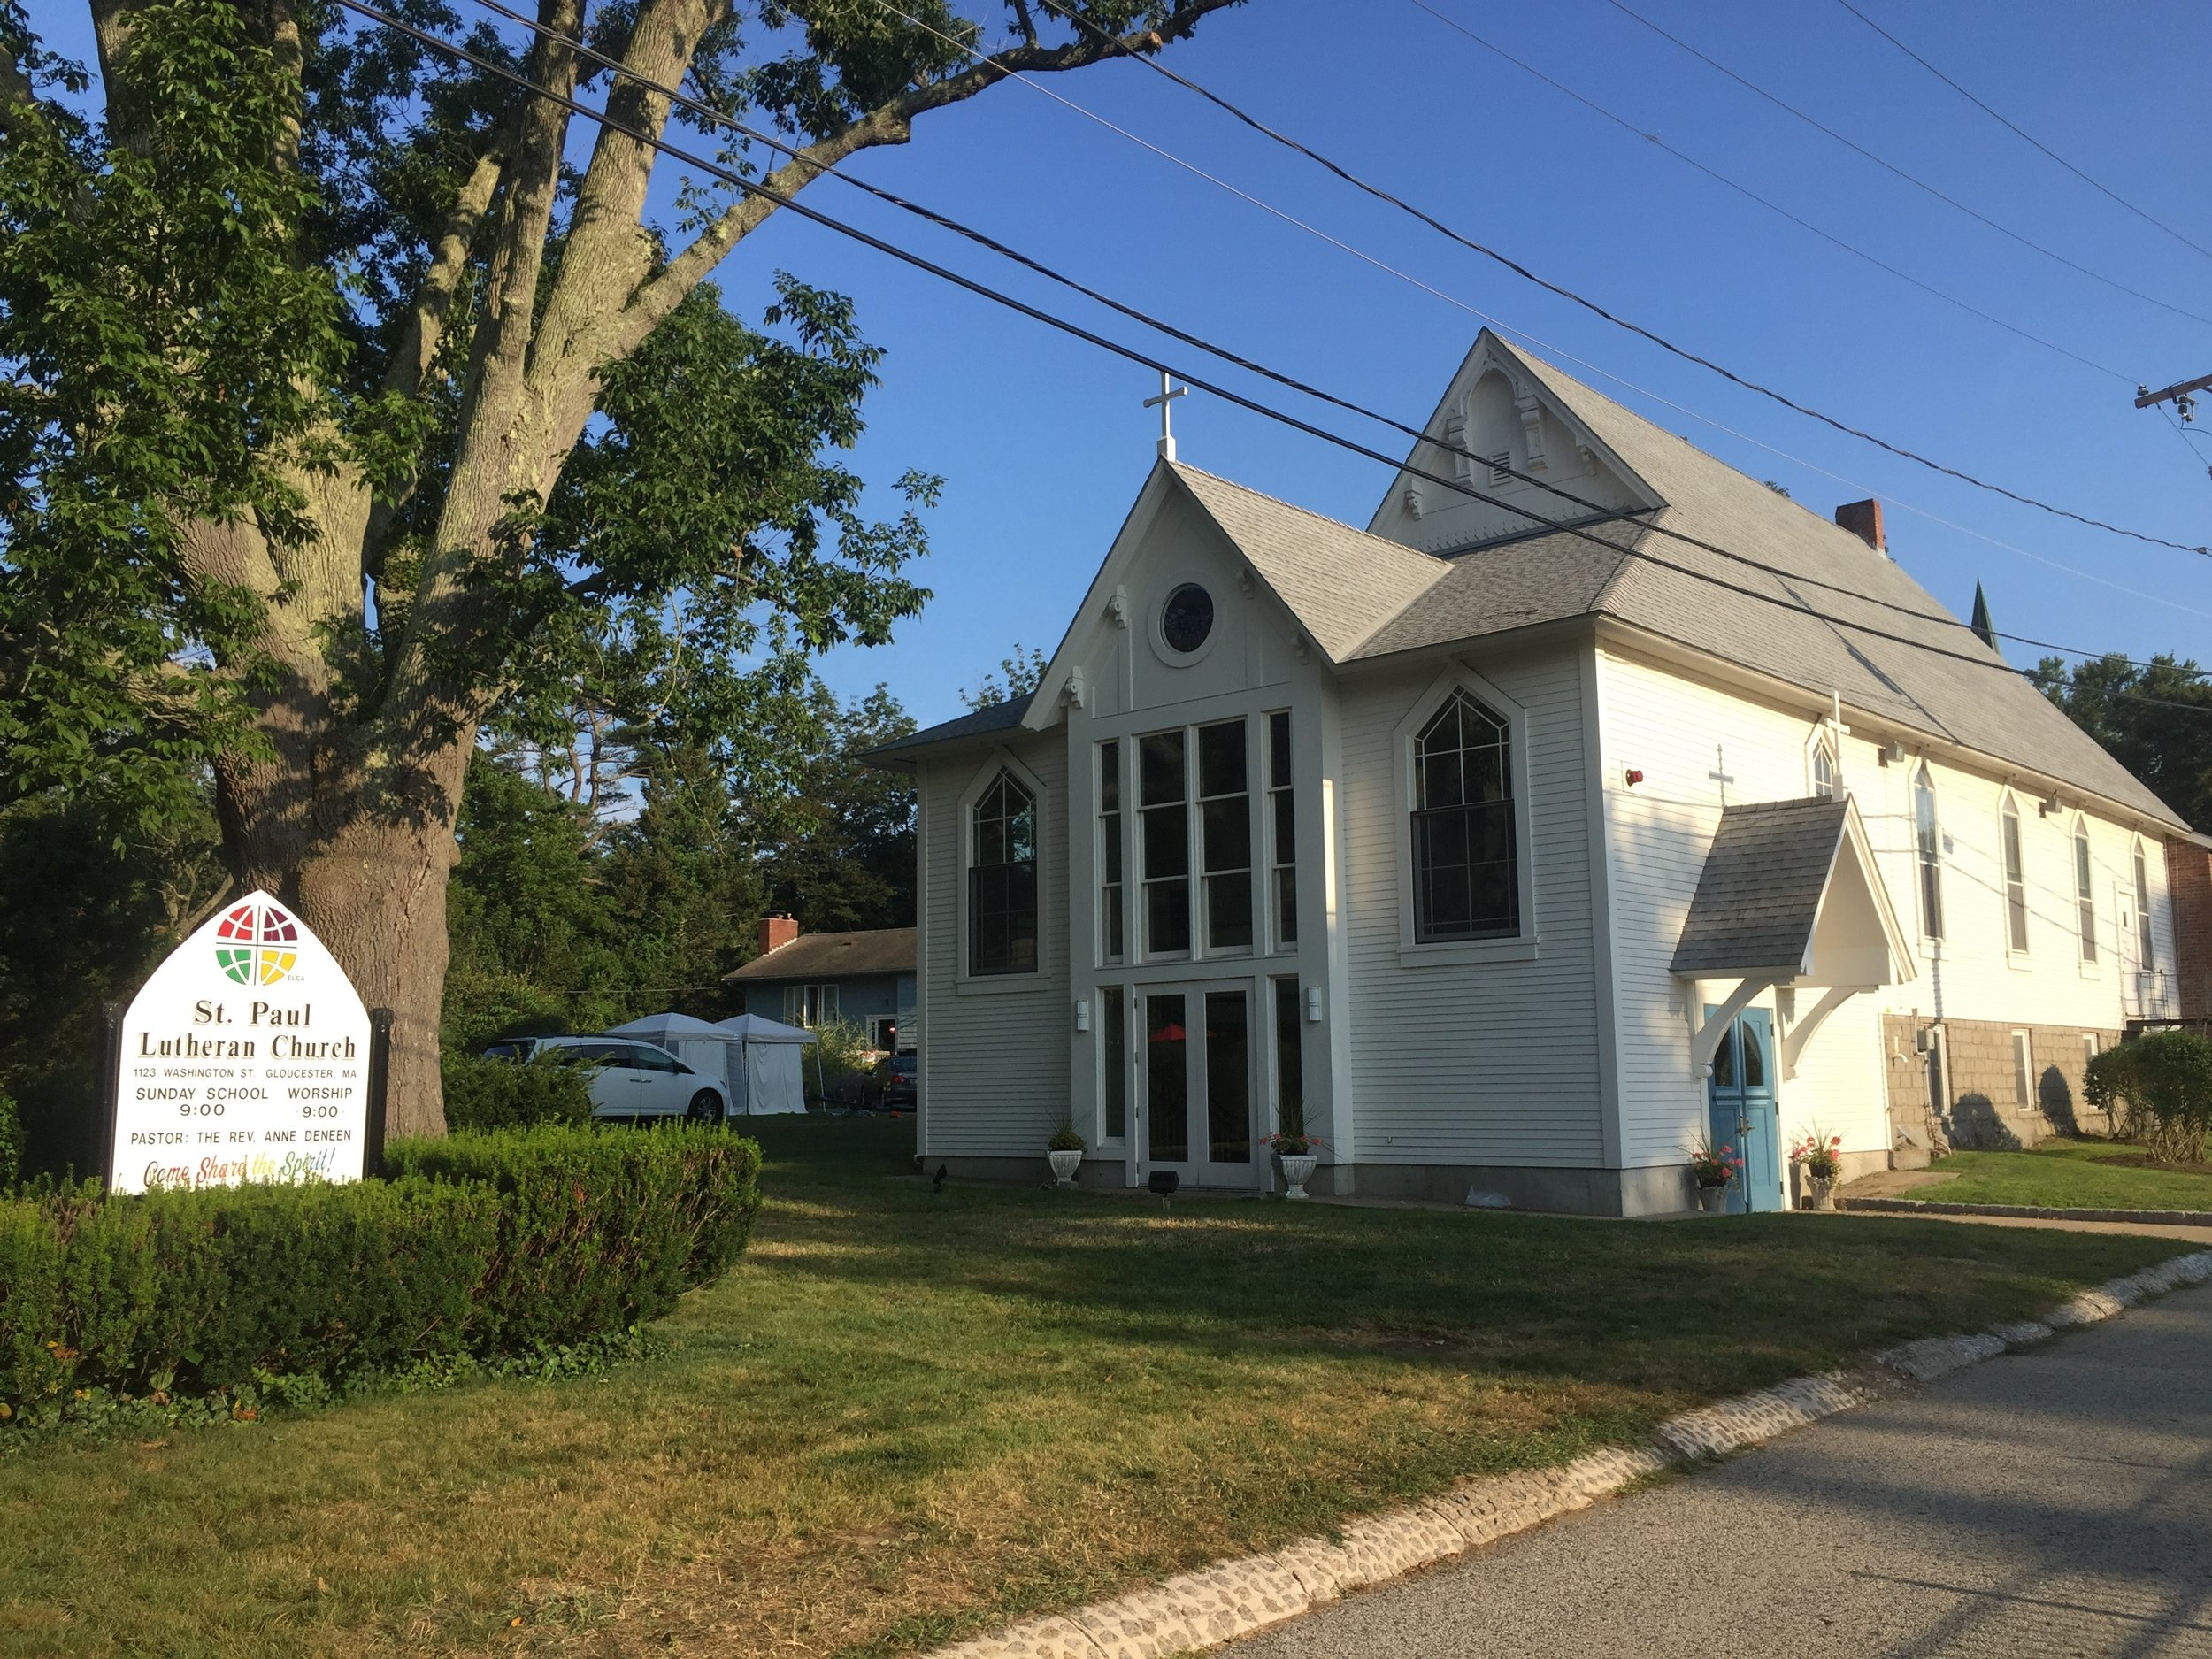 """St. Paul Lutheran Church in Gloucester is an acoustically and aesthetically ideal setting for the intimacy of chamber music.""        --Cape Ann Beacon"